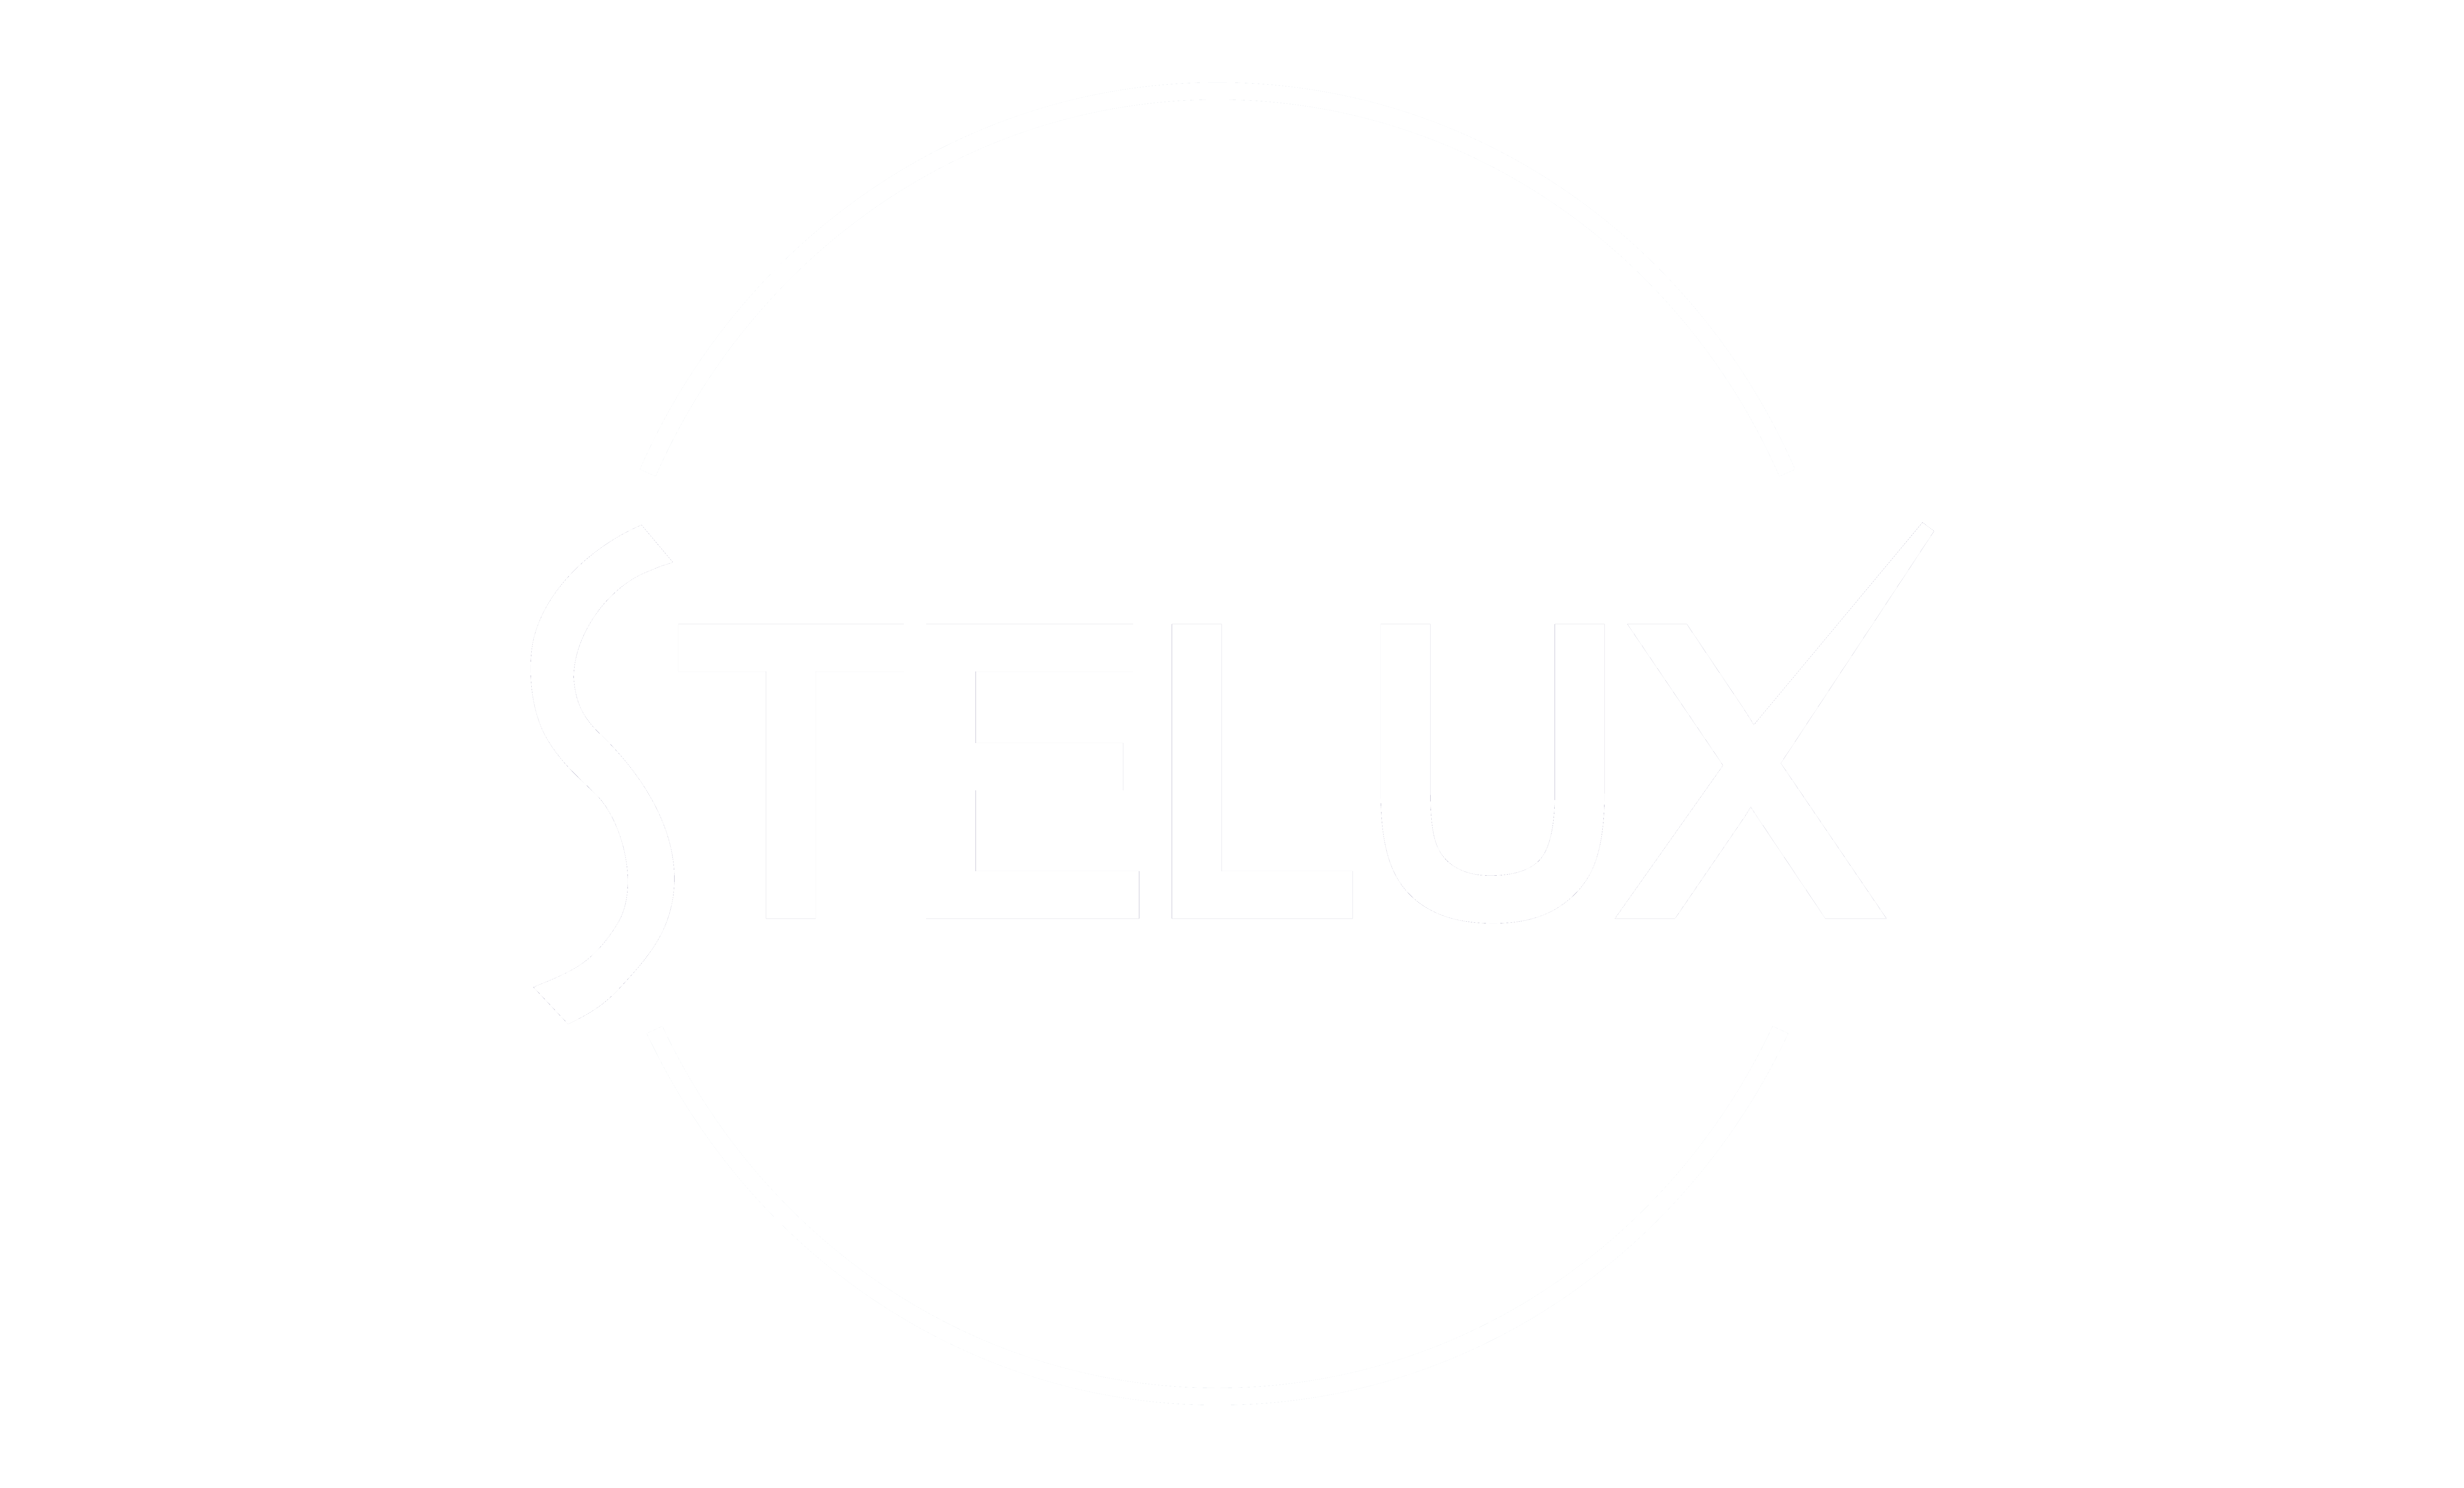 03_Stelux.png